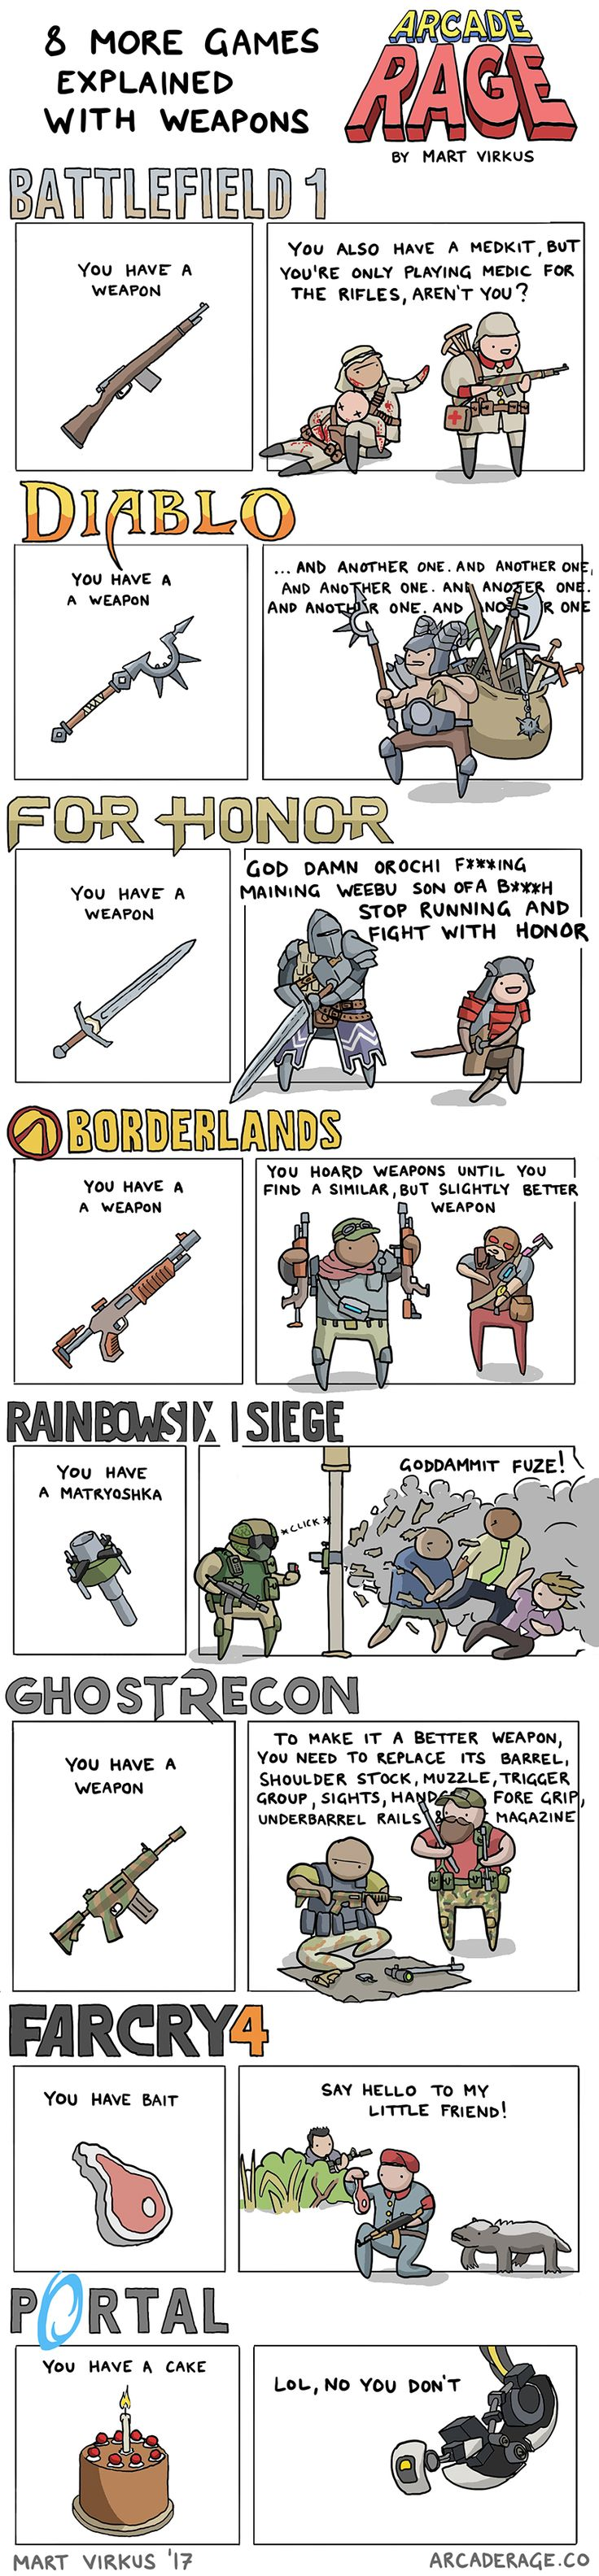 "Here's part 2 of ""Game Mechanics Explained with Weapons"":"